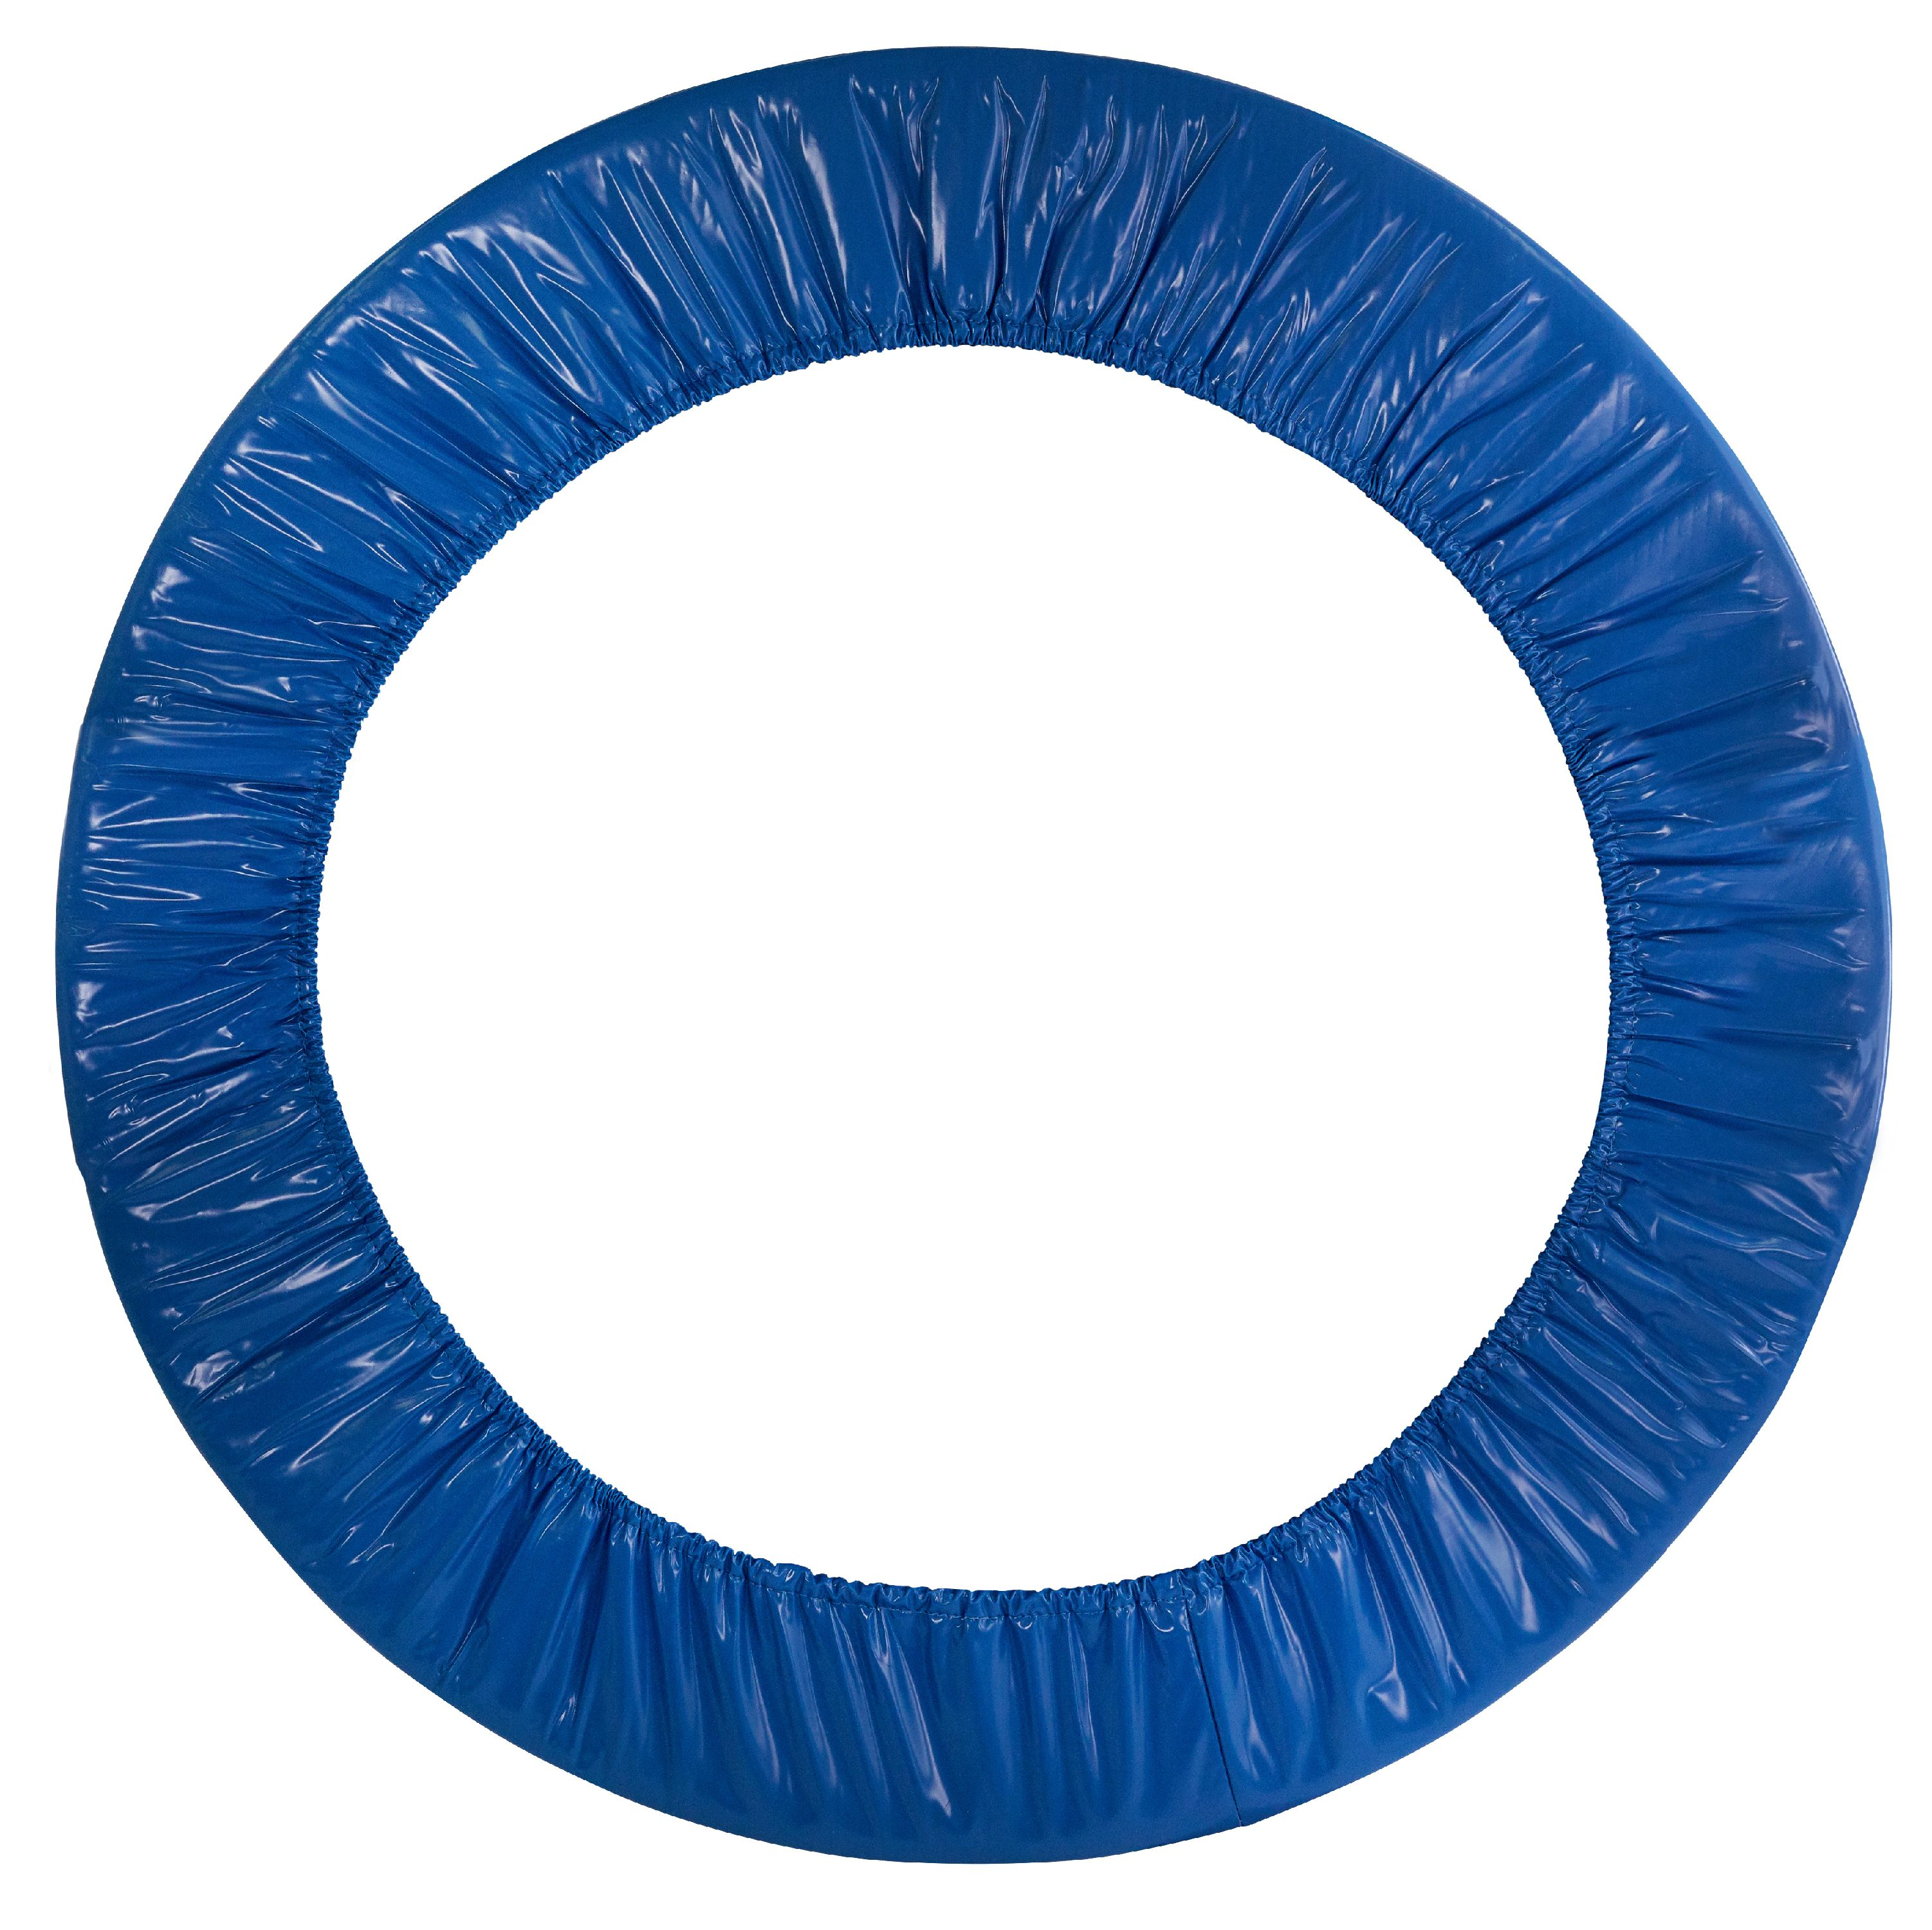 "40"" Mini Round Trampoline Replacement Safety Pad for 6 Legs - Blue"